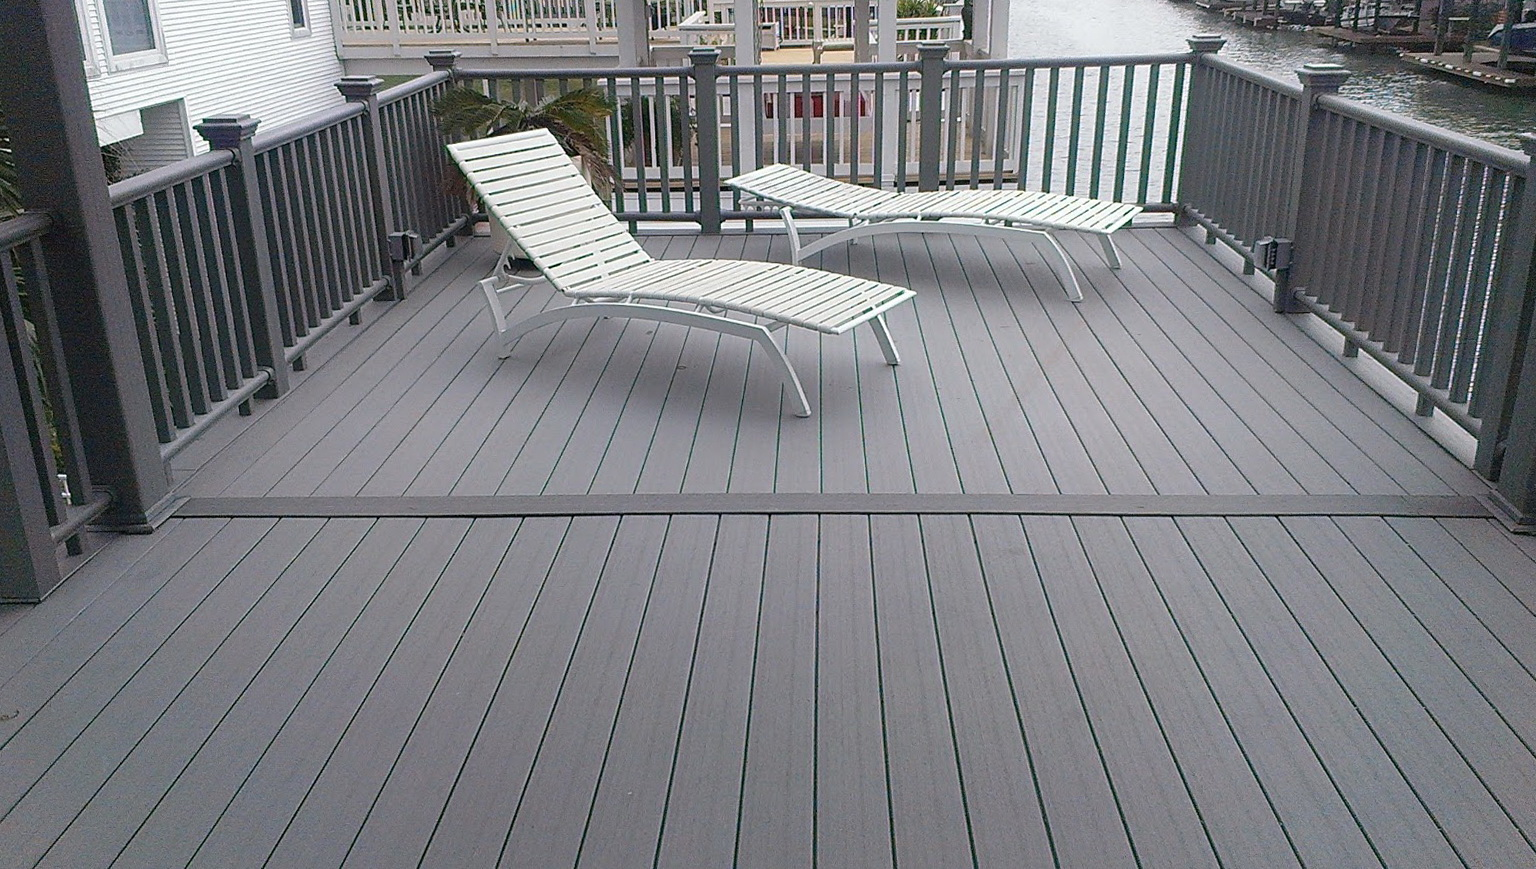 Home Depot Decking Composite | Veranda Composite Decking | Armor Guard Decking